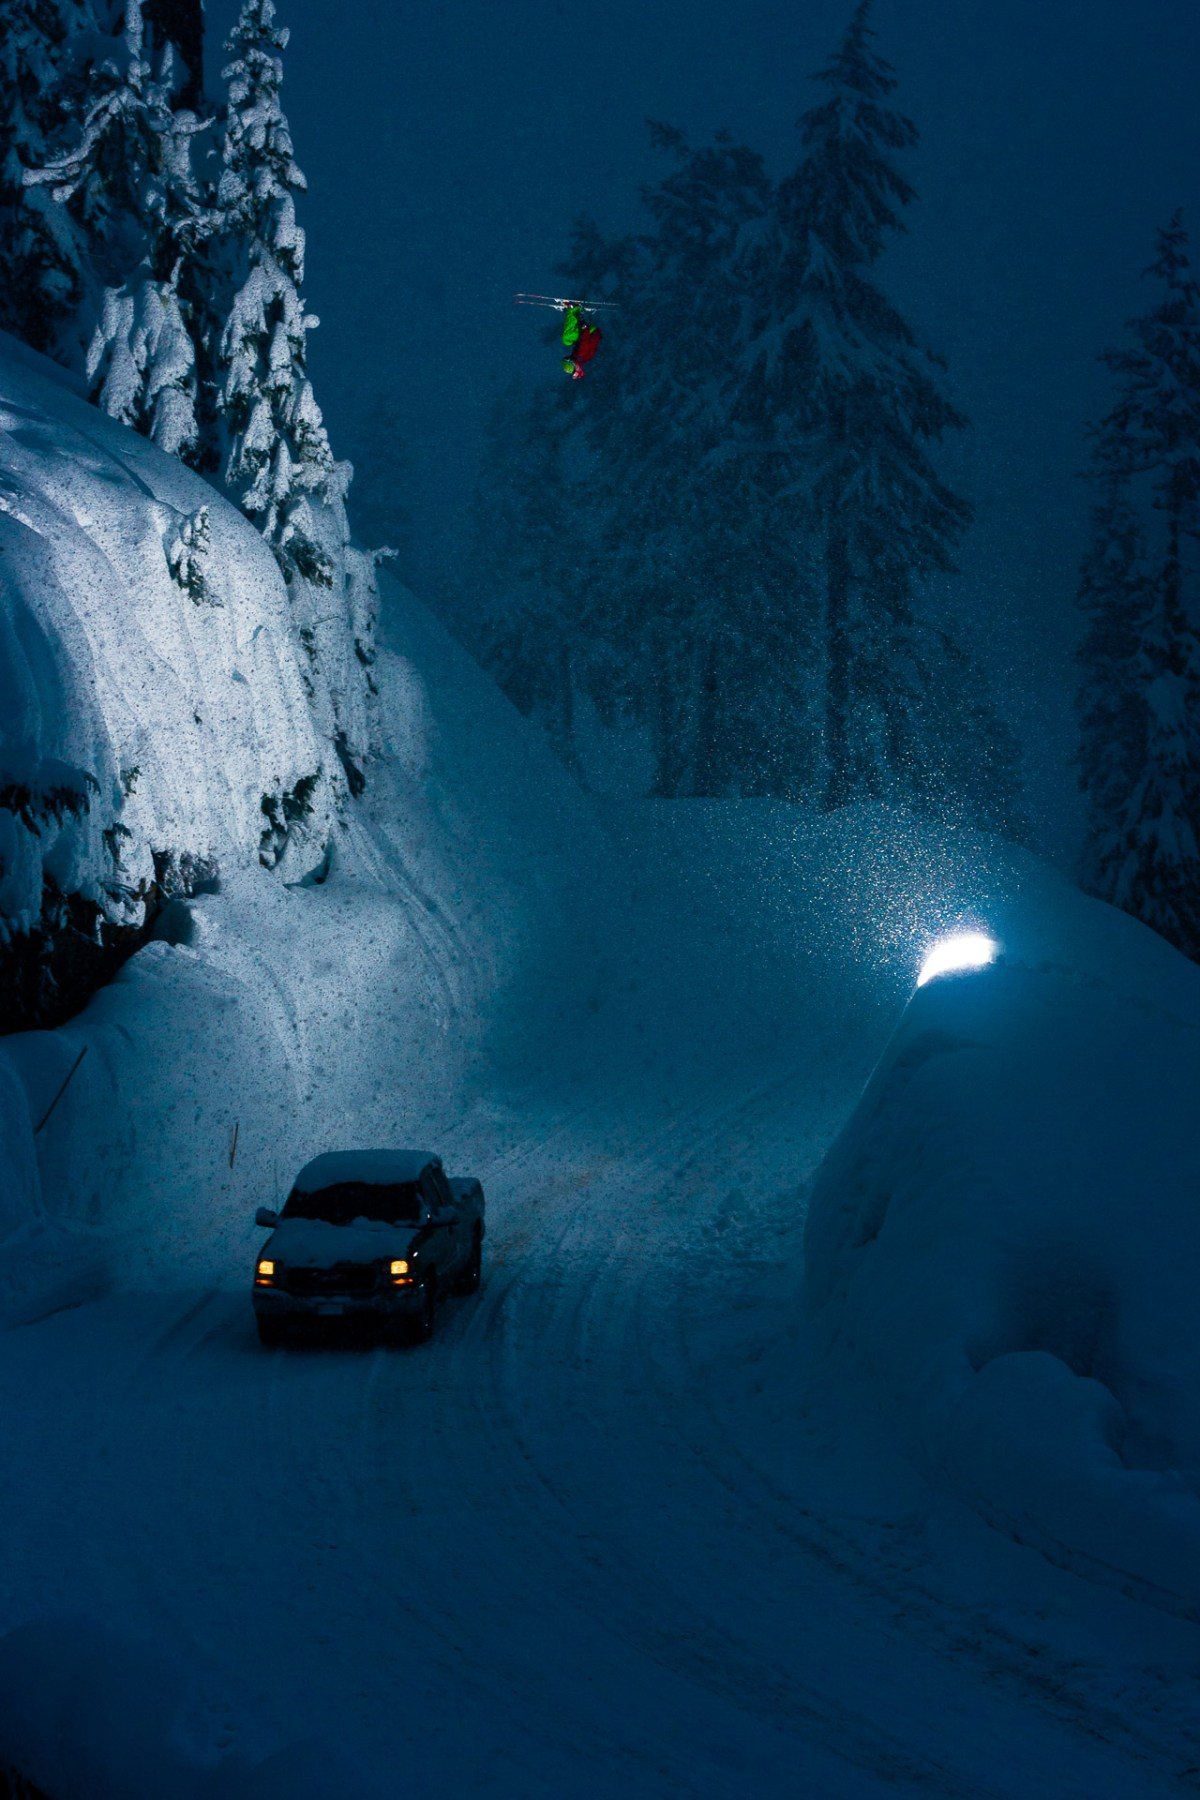 Dana Flahr throwing a very large lawn dart front flip over the Mt. Baker road gap at dusk while filming for TGR